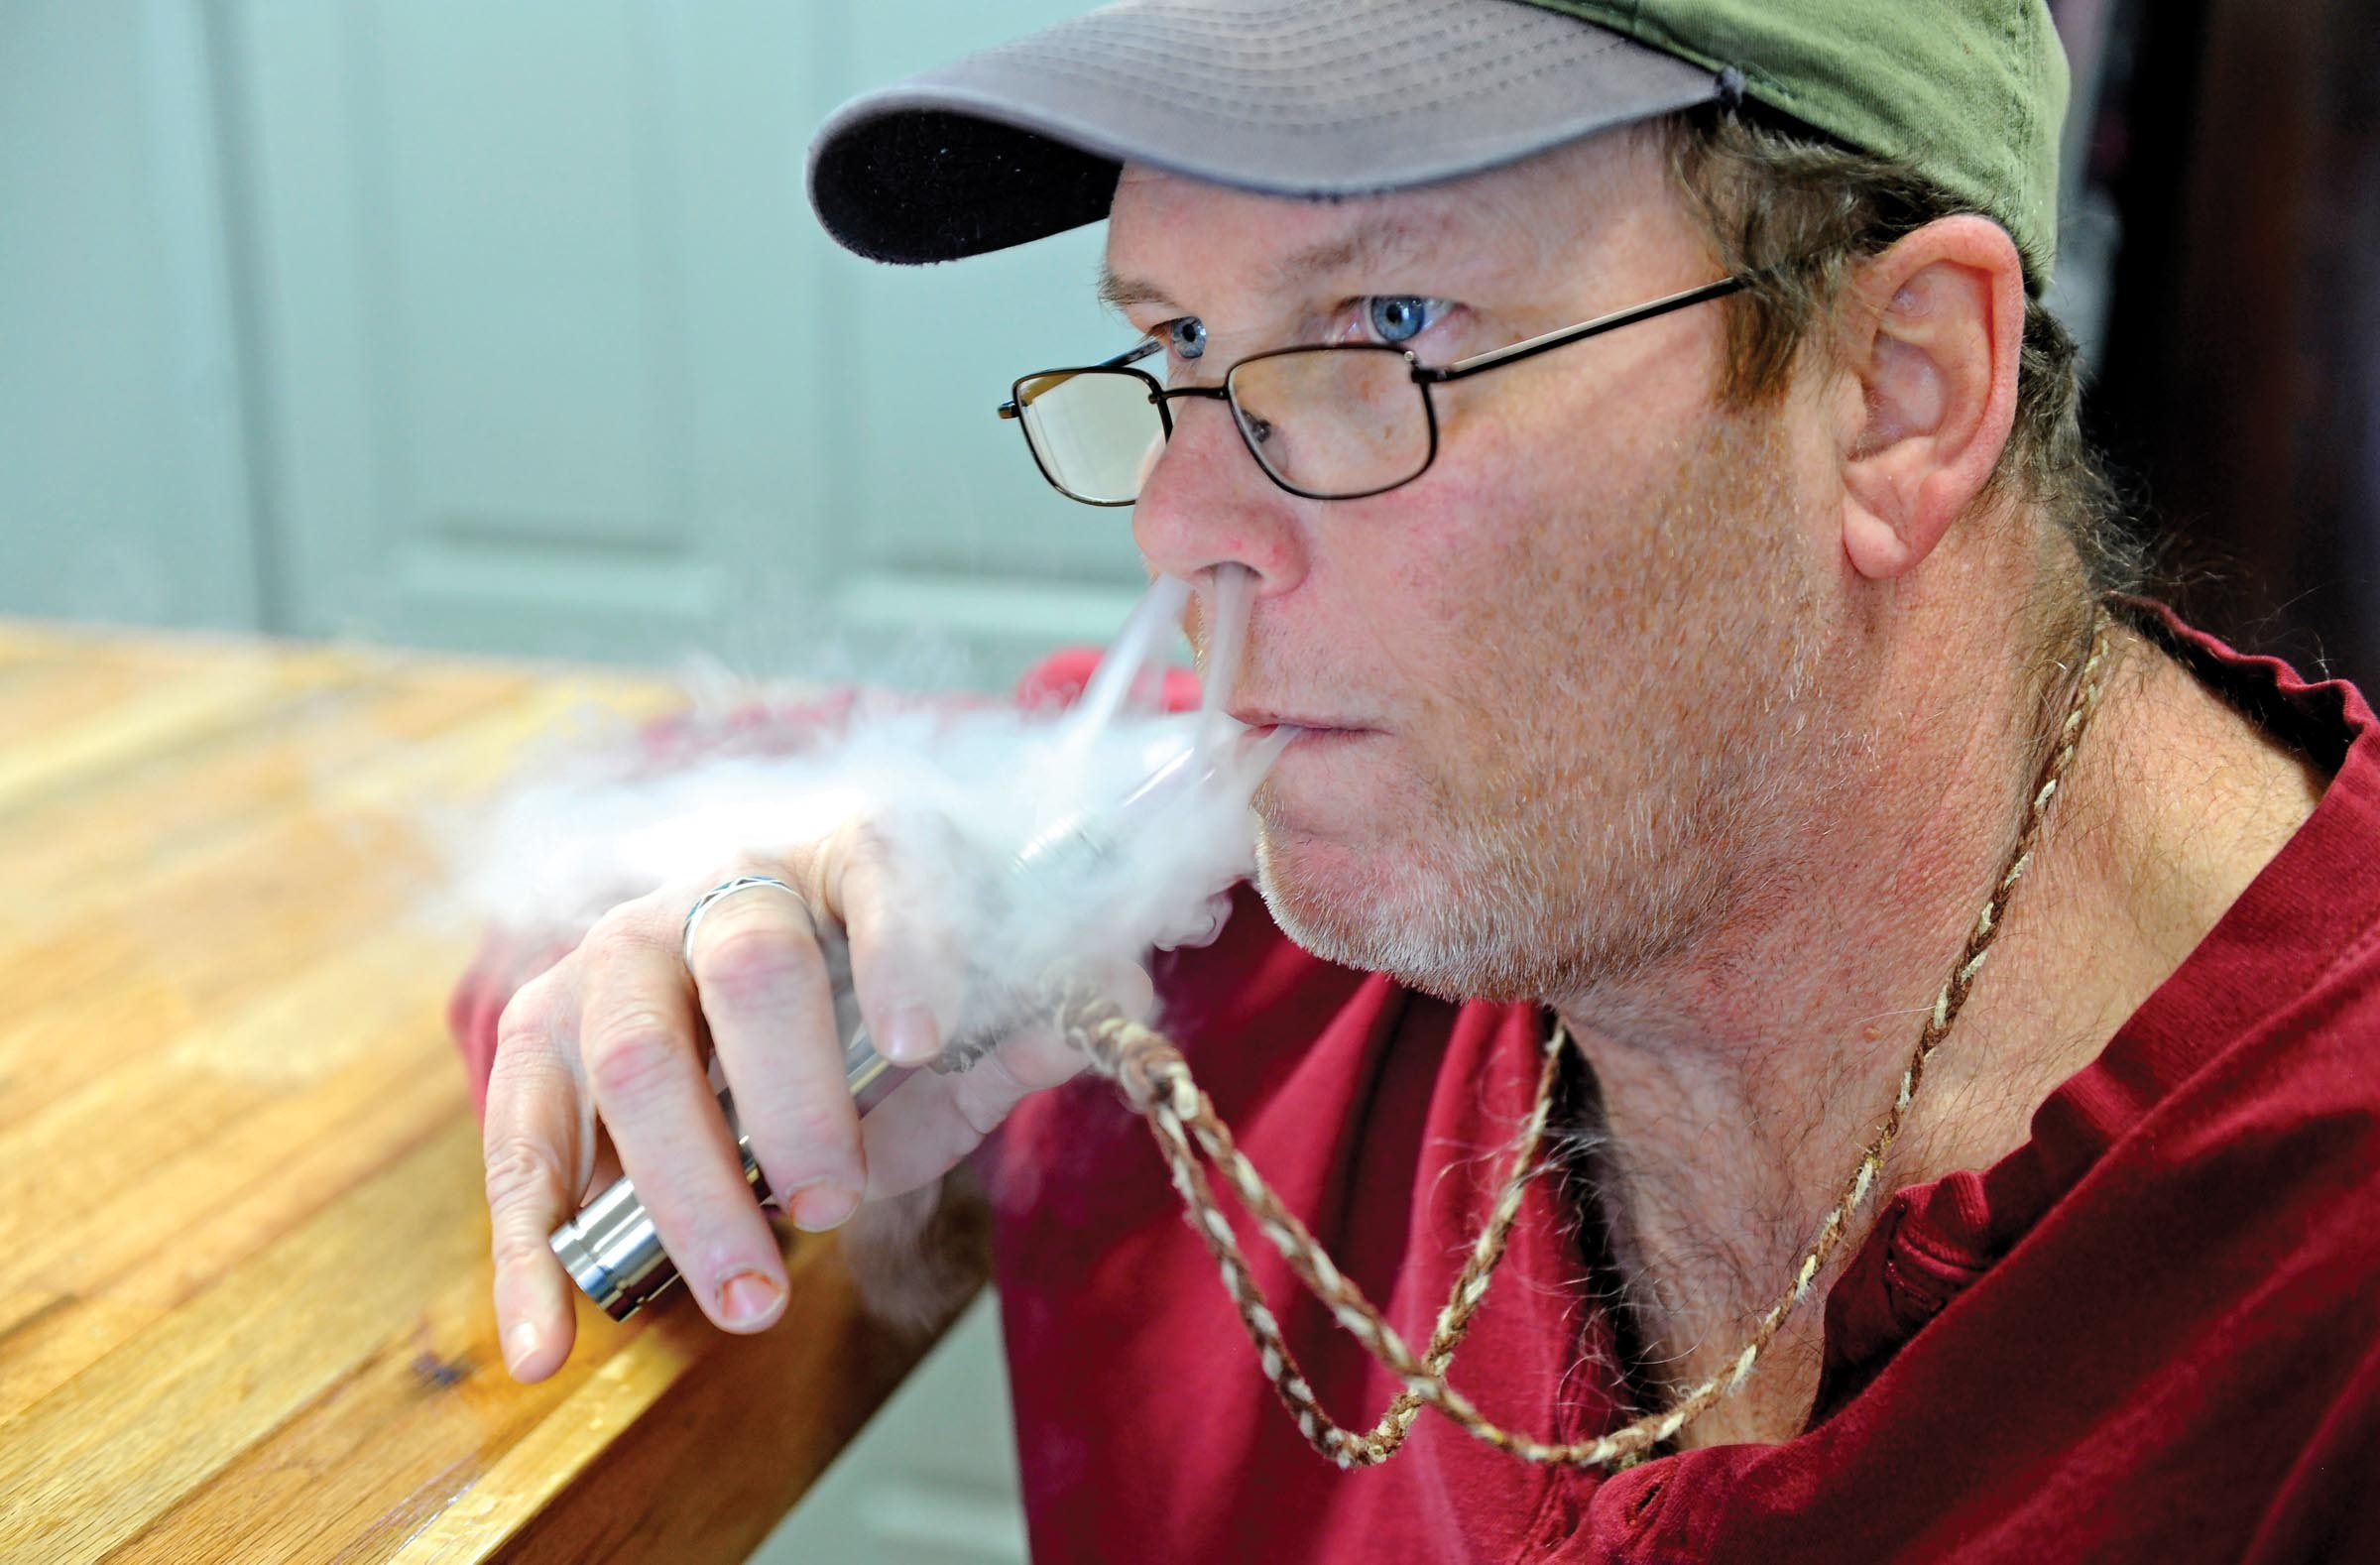 RVA Vapes customer David Payne, once a smoker of Swisher Sweets, puffs on a pineapple-upside-down-cake-flavored e-cig. - SCOTT ELMQUIST